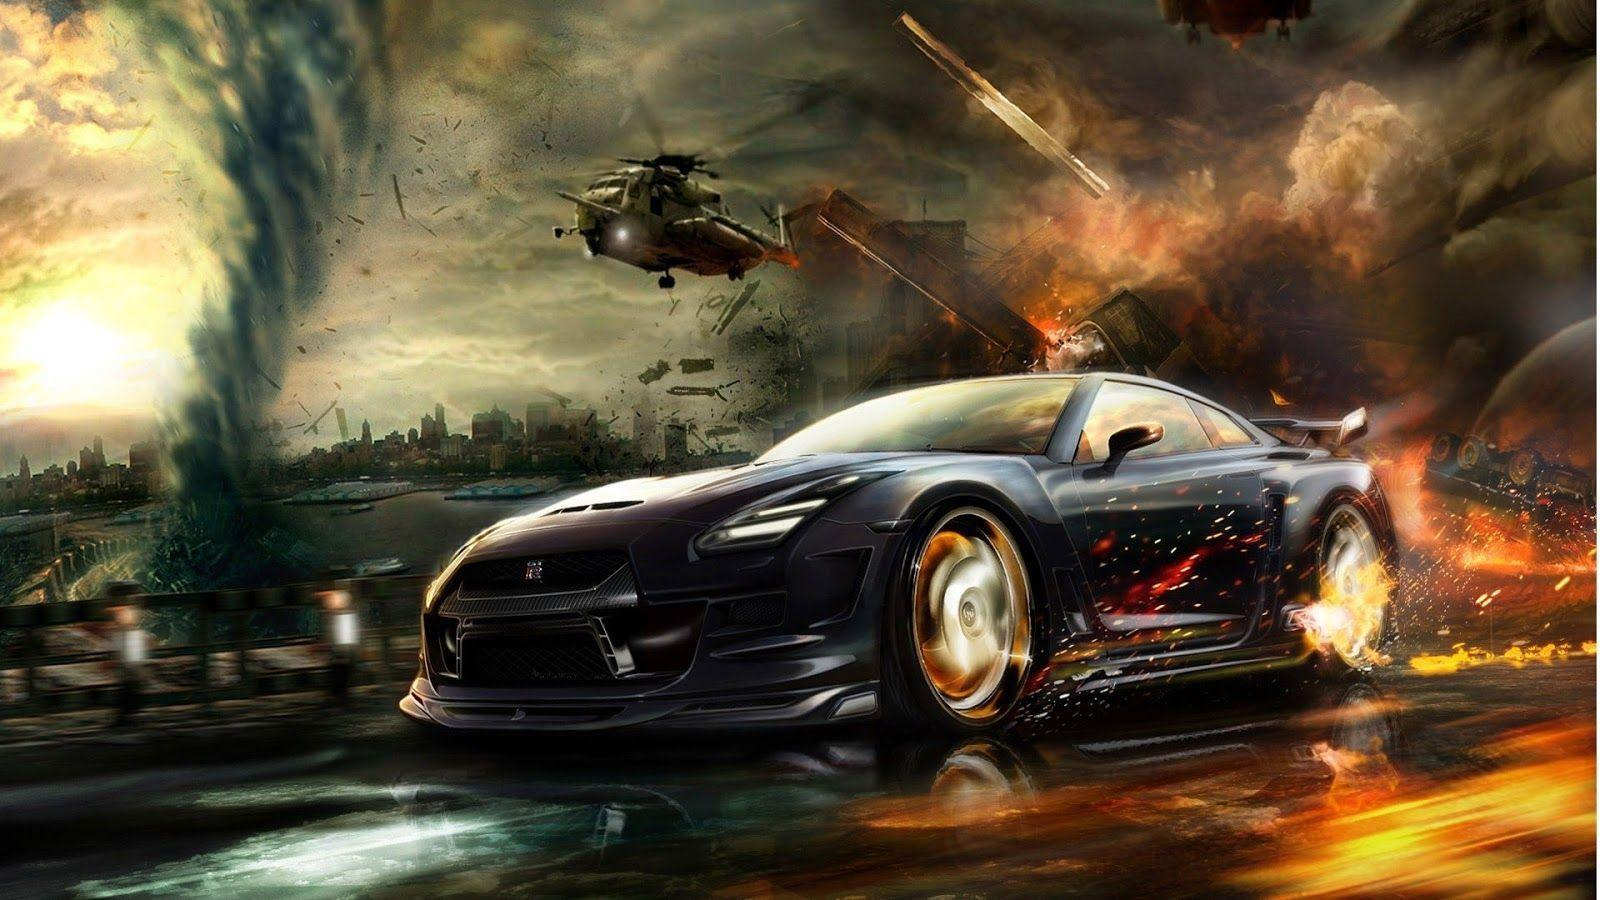 Bets Cool Cars And Image HD Wallpaper Dekstop 12957 Full HD ...